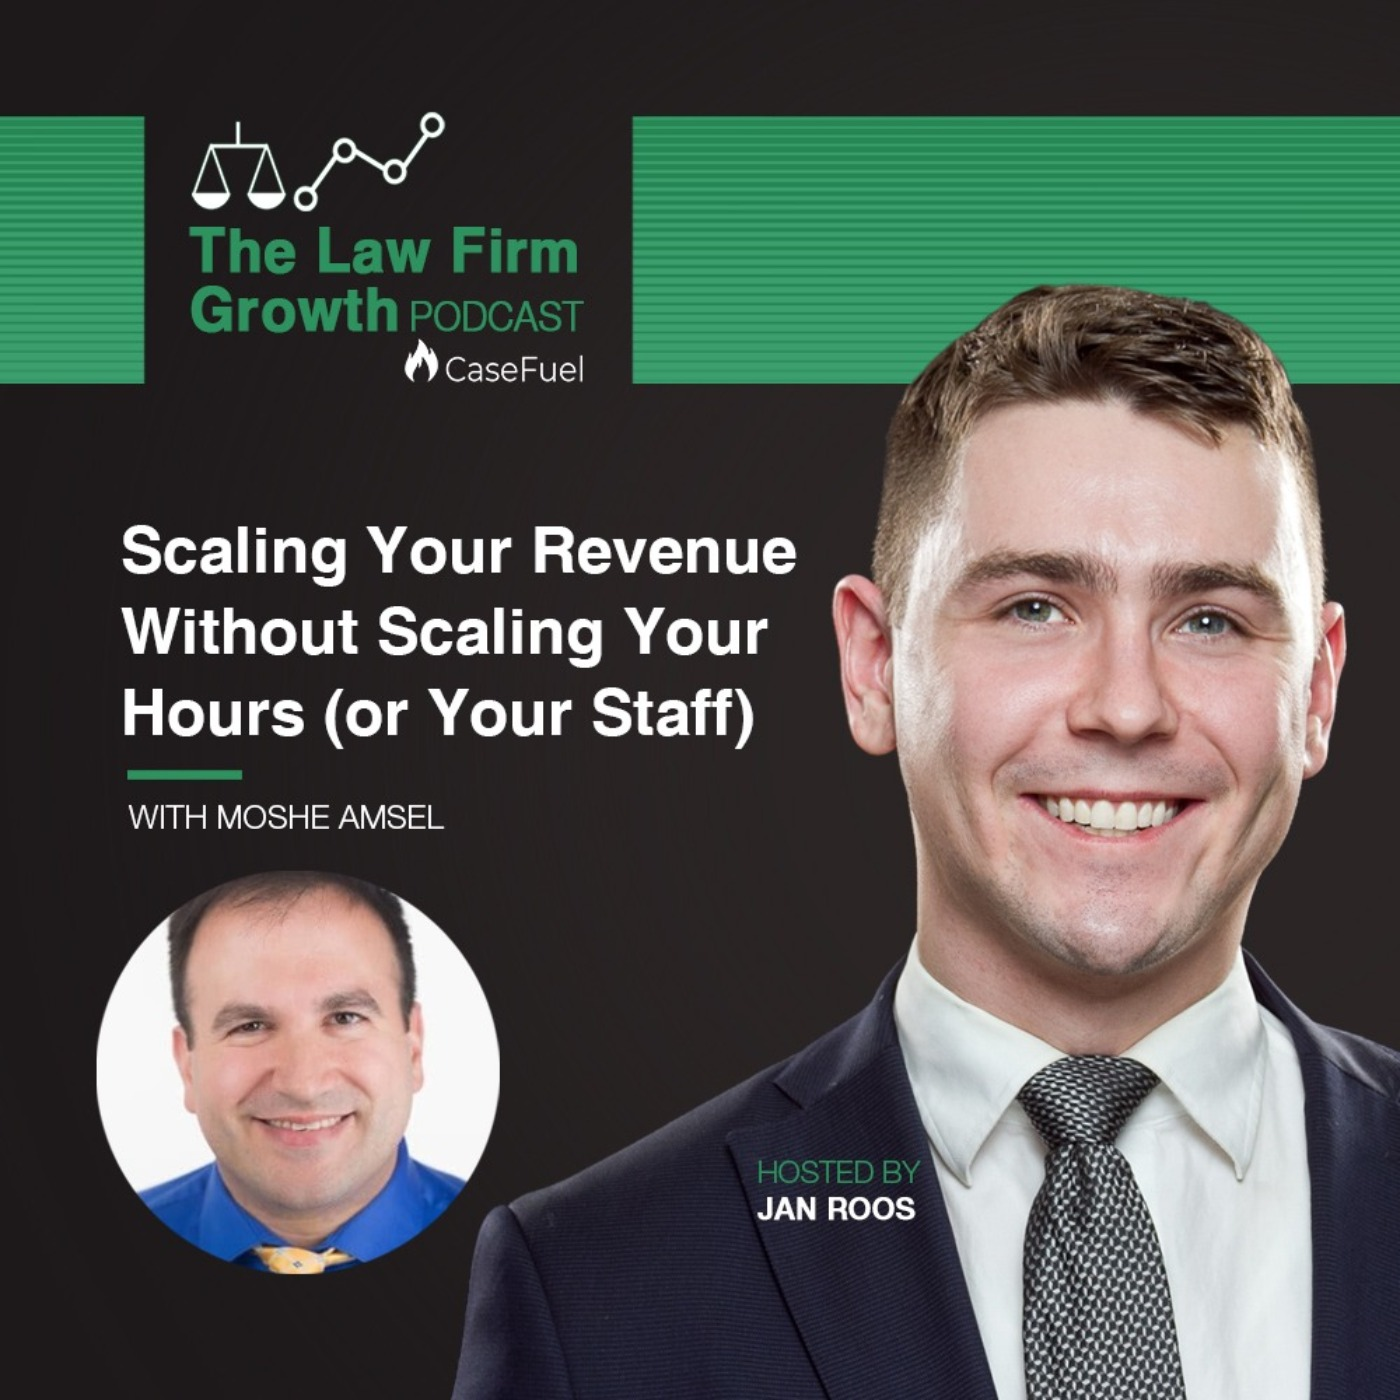 Scaling Your Profitability Without Scaling Your Hours (or Your Staff) with Moshe Amsel